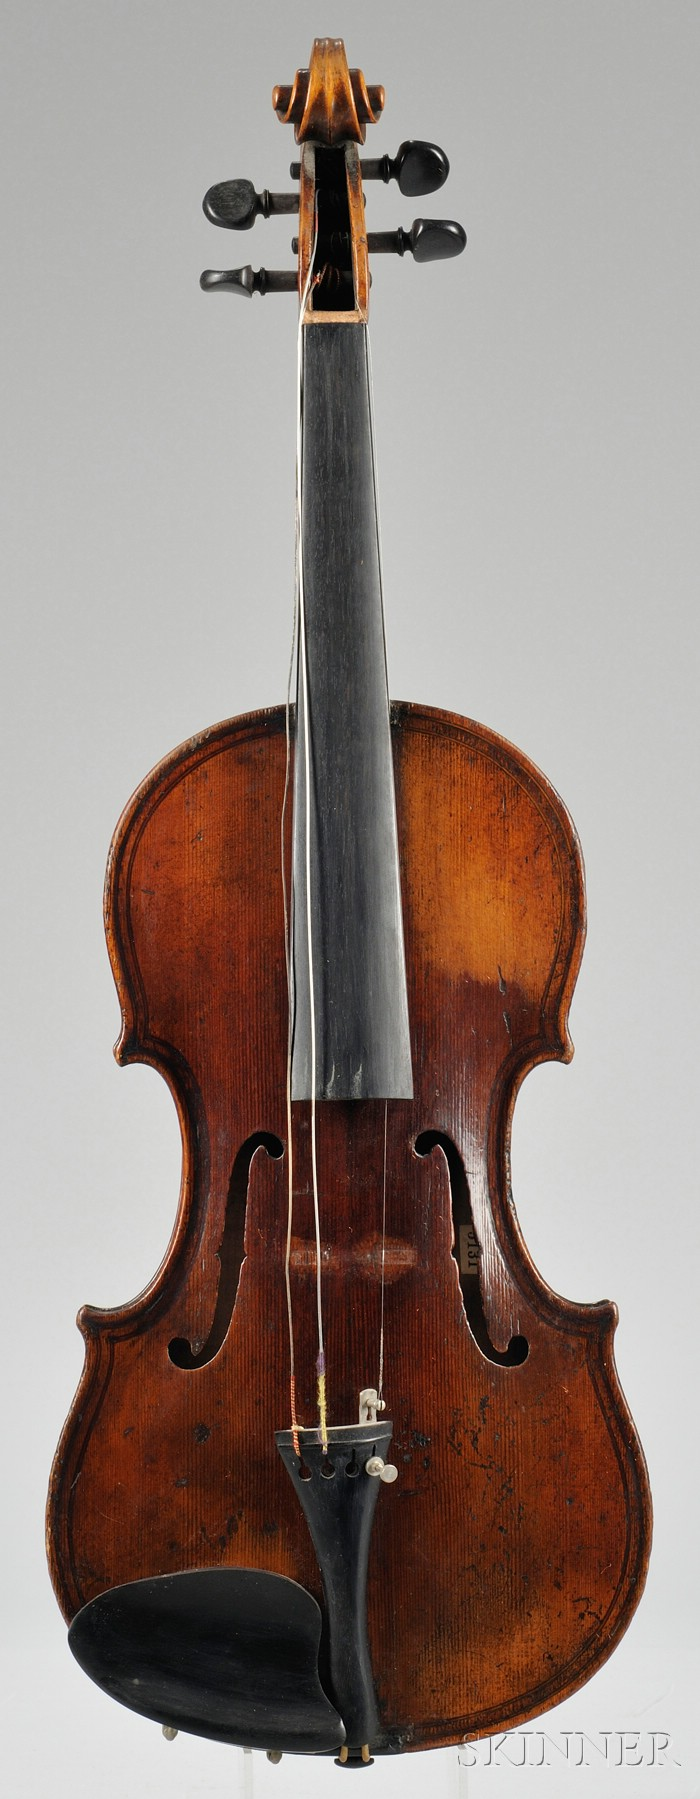 German Violin, c. 1880